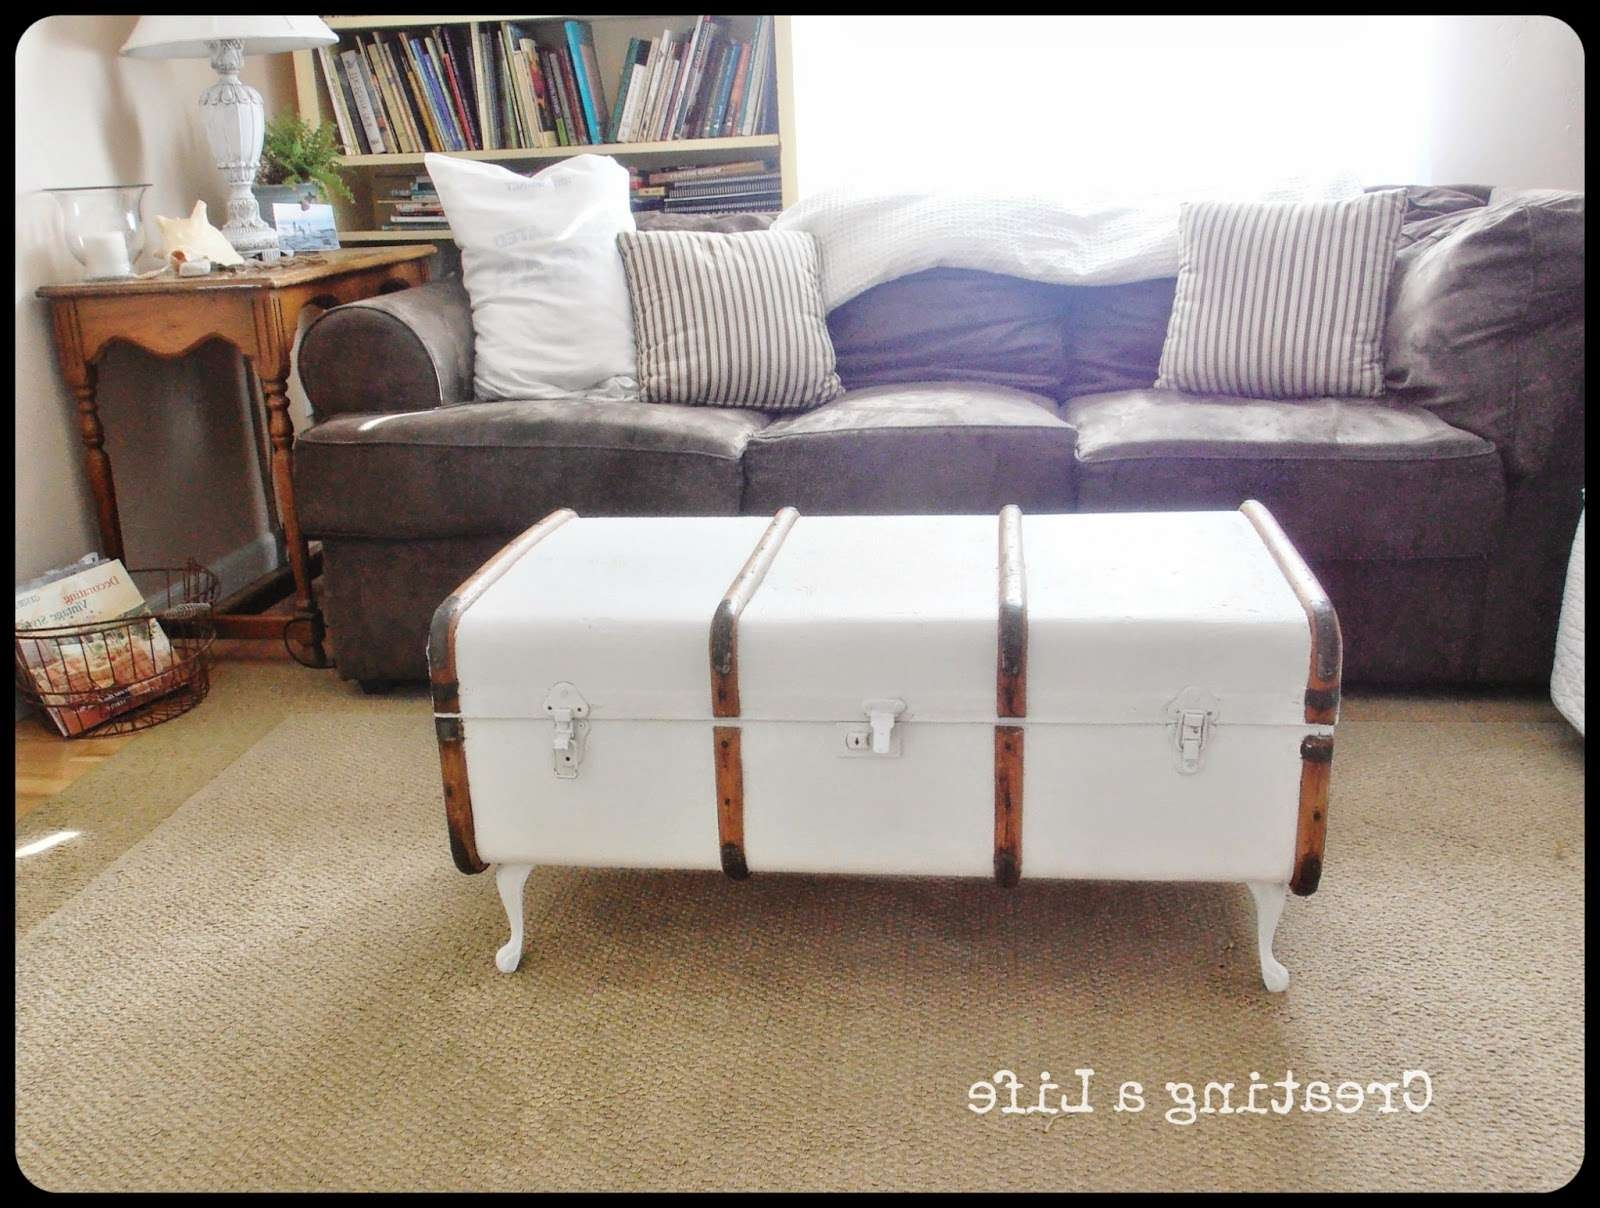 Well Liked Old Trunks As Coffee Tables Within Creating A Life: Vintage Trunk Coffee Table (View 13 of 20)